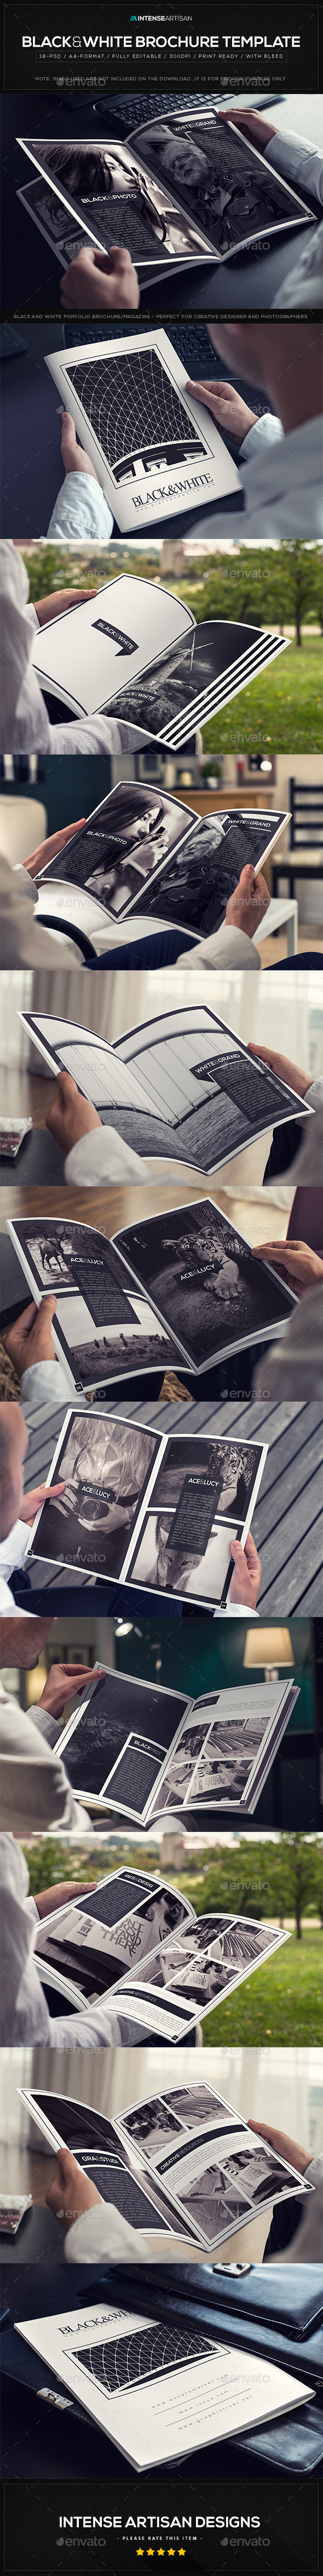 GraphicRiver Black & White Brochure Template V.1 10600054